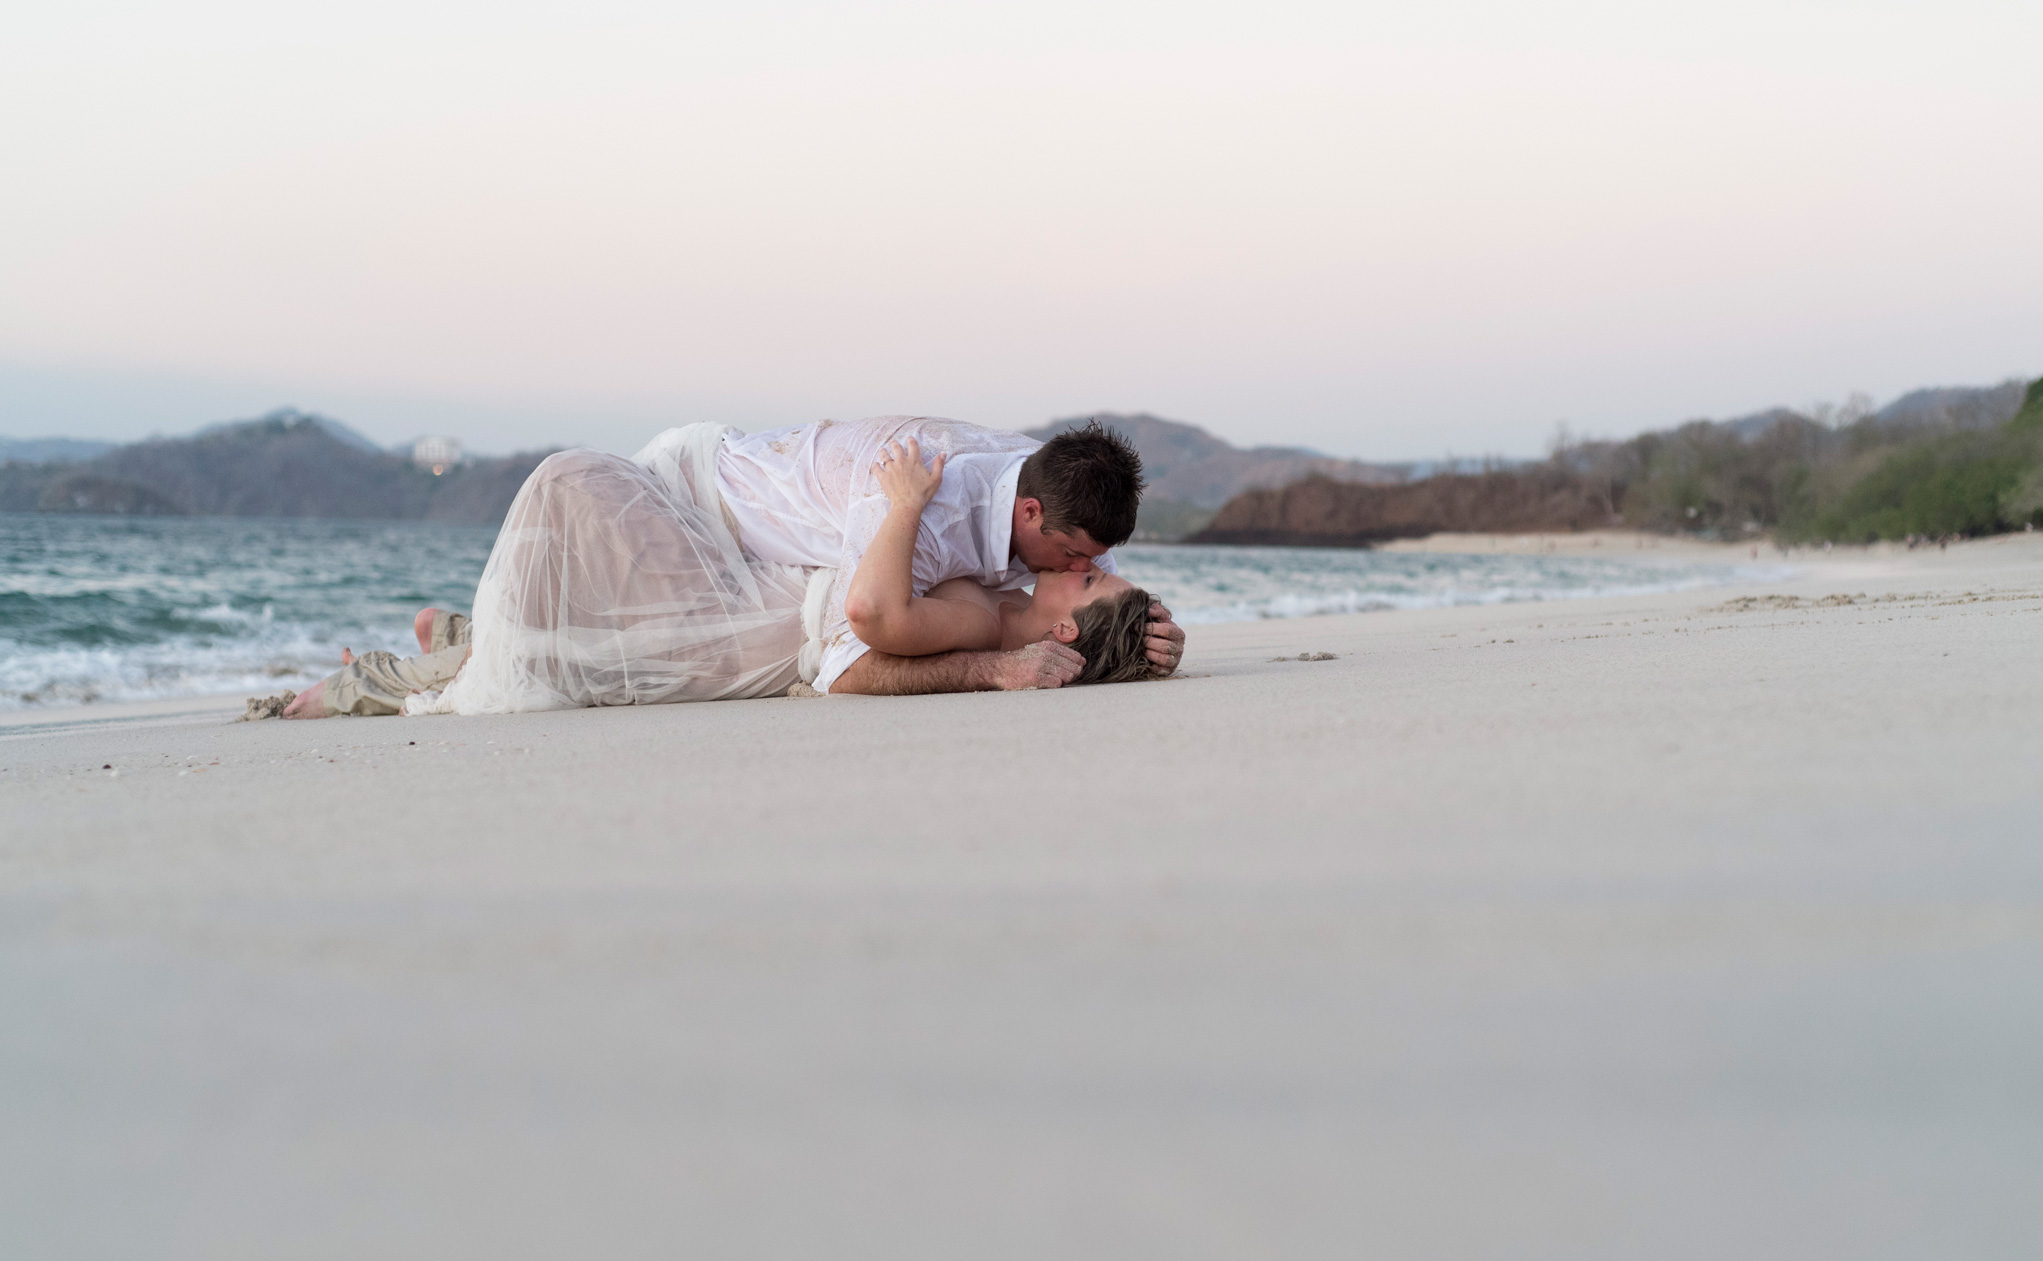 Bride and groom romantically kissing ton the beach at Playa Conchal, Costa Rica. Photographed by Kristen M. Brown, Samba to the Sea Photography.